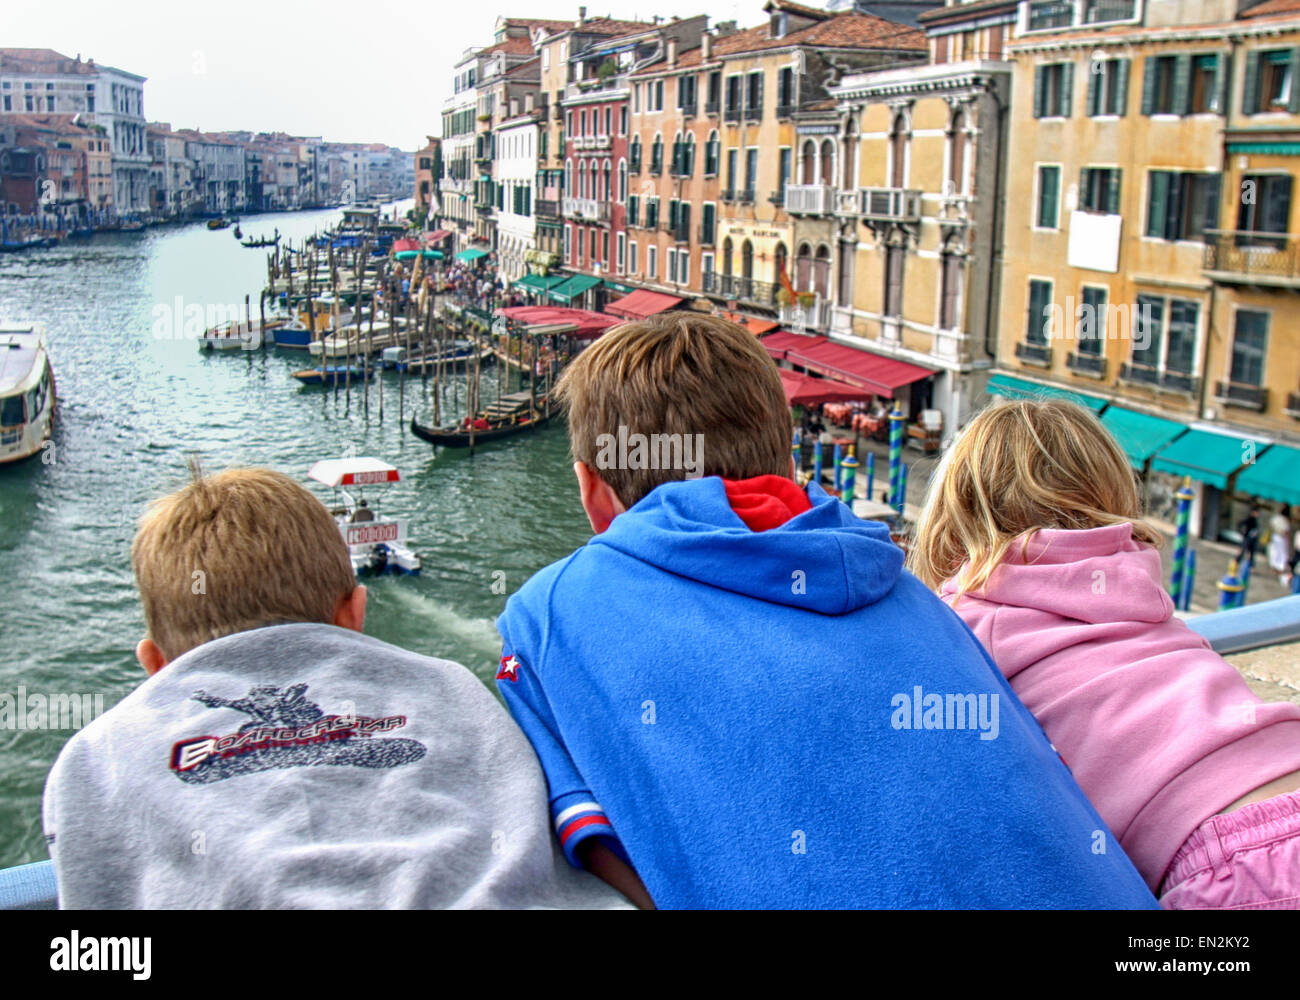 Venice, Province of Venice, ITALY. 7th Oct, 2004. Three tourist children lean over the railing of the famous Rialto - Stock Image